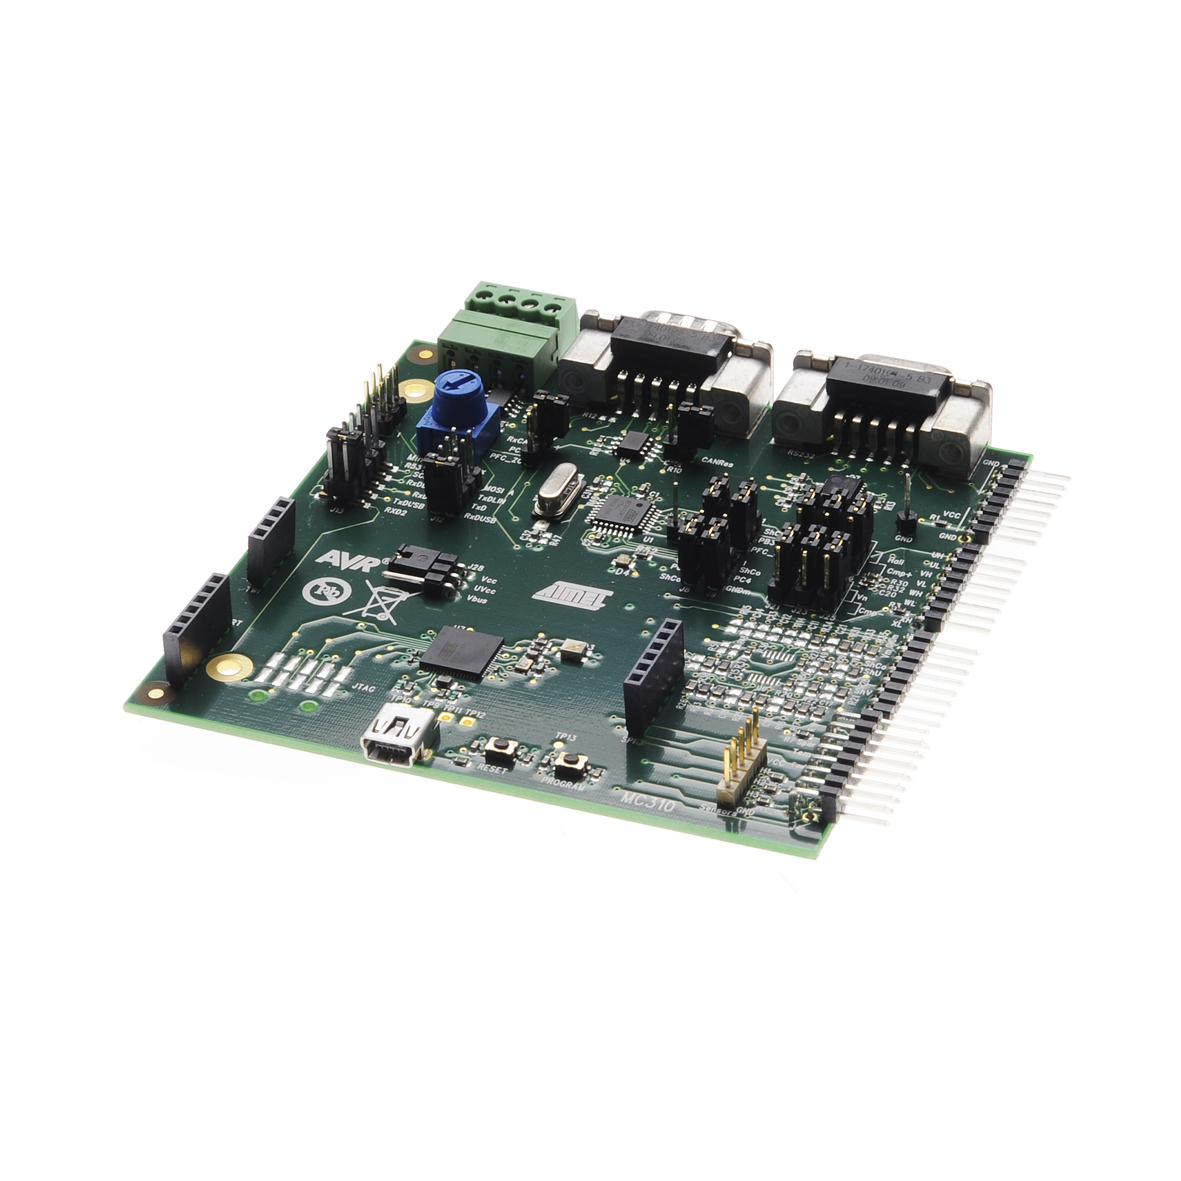 Development Tools Evas Are Extensive Printedcircuit Board Pcb Networks That Contain Part Number Atavrmc310